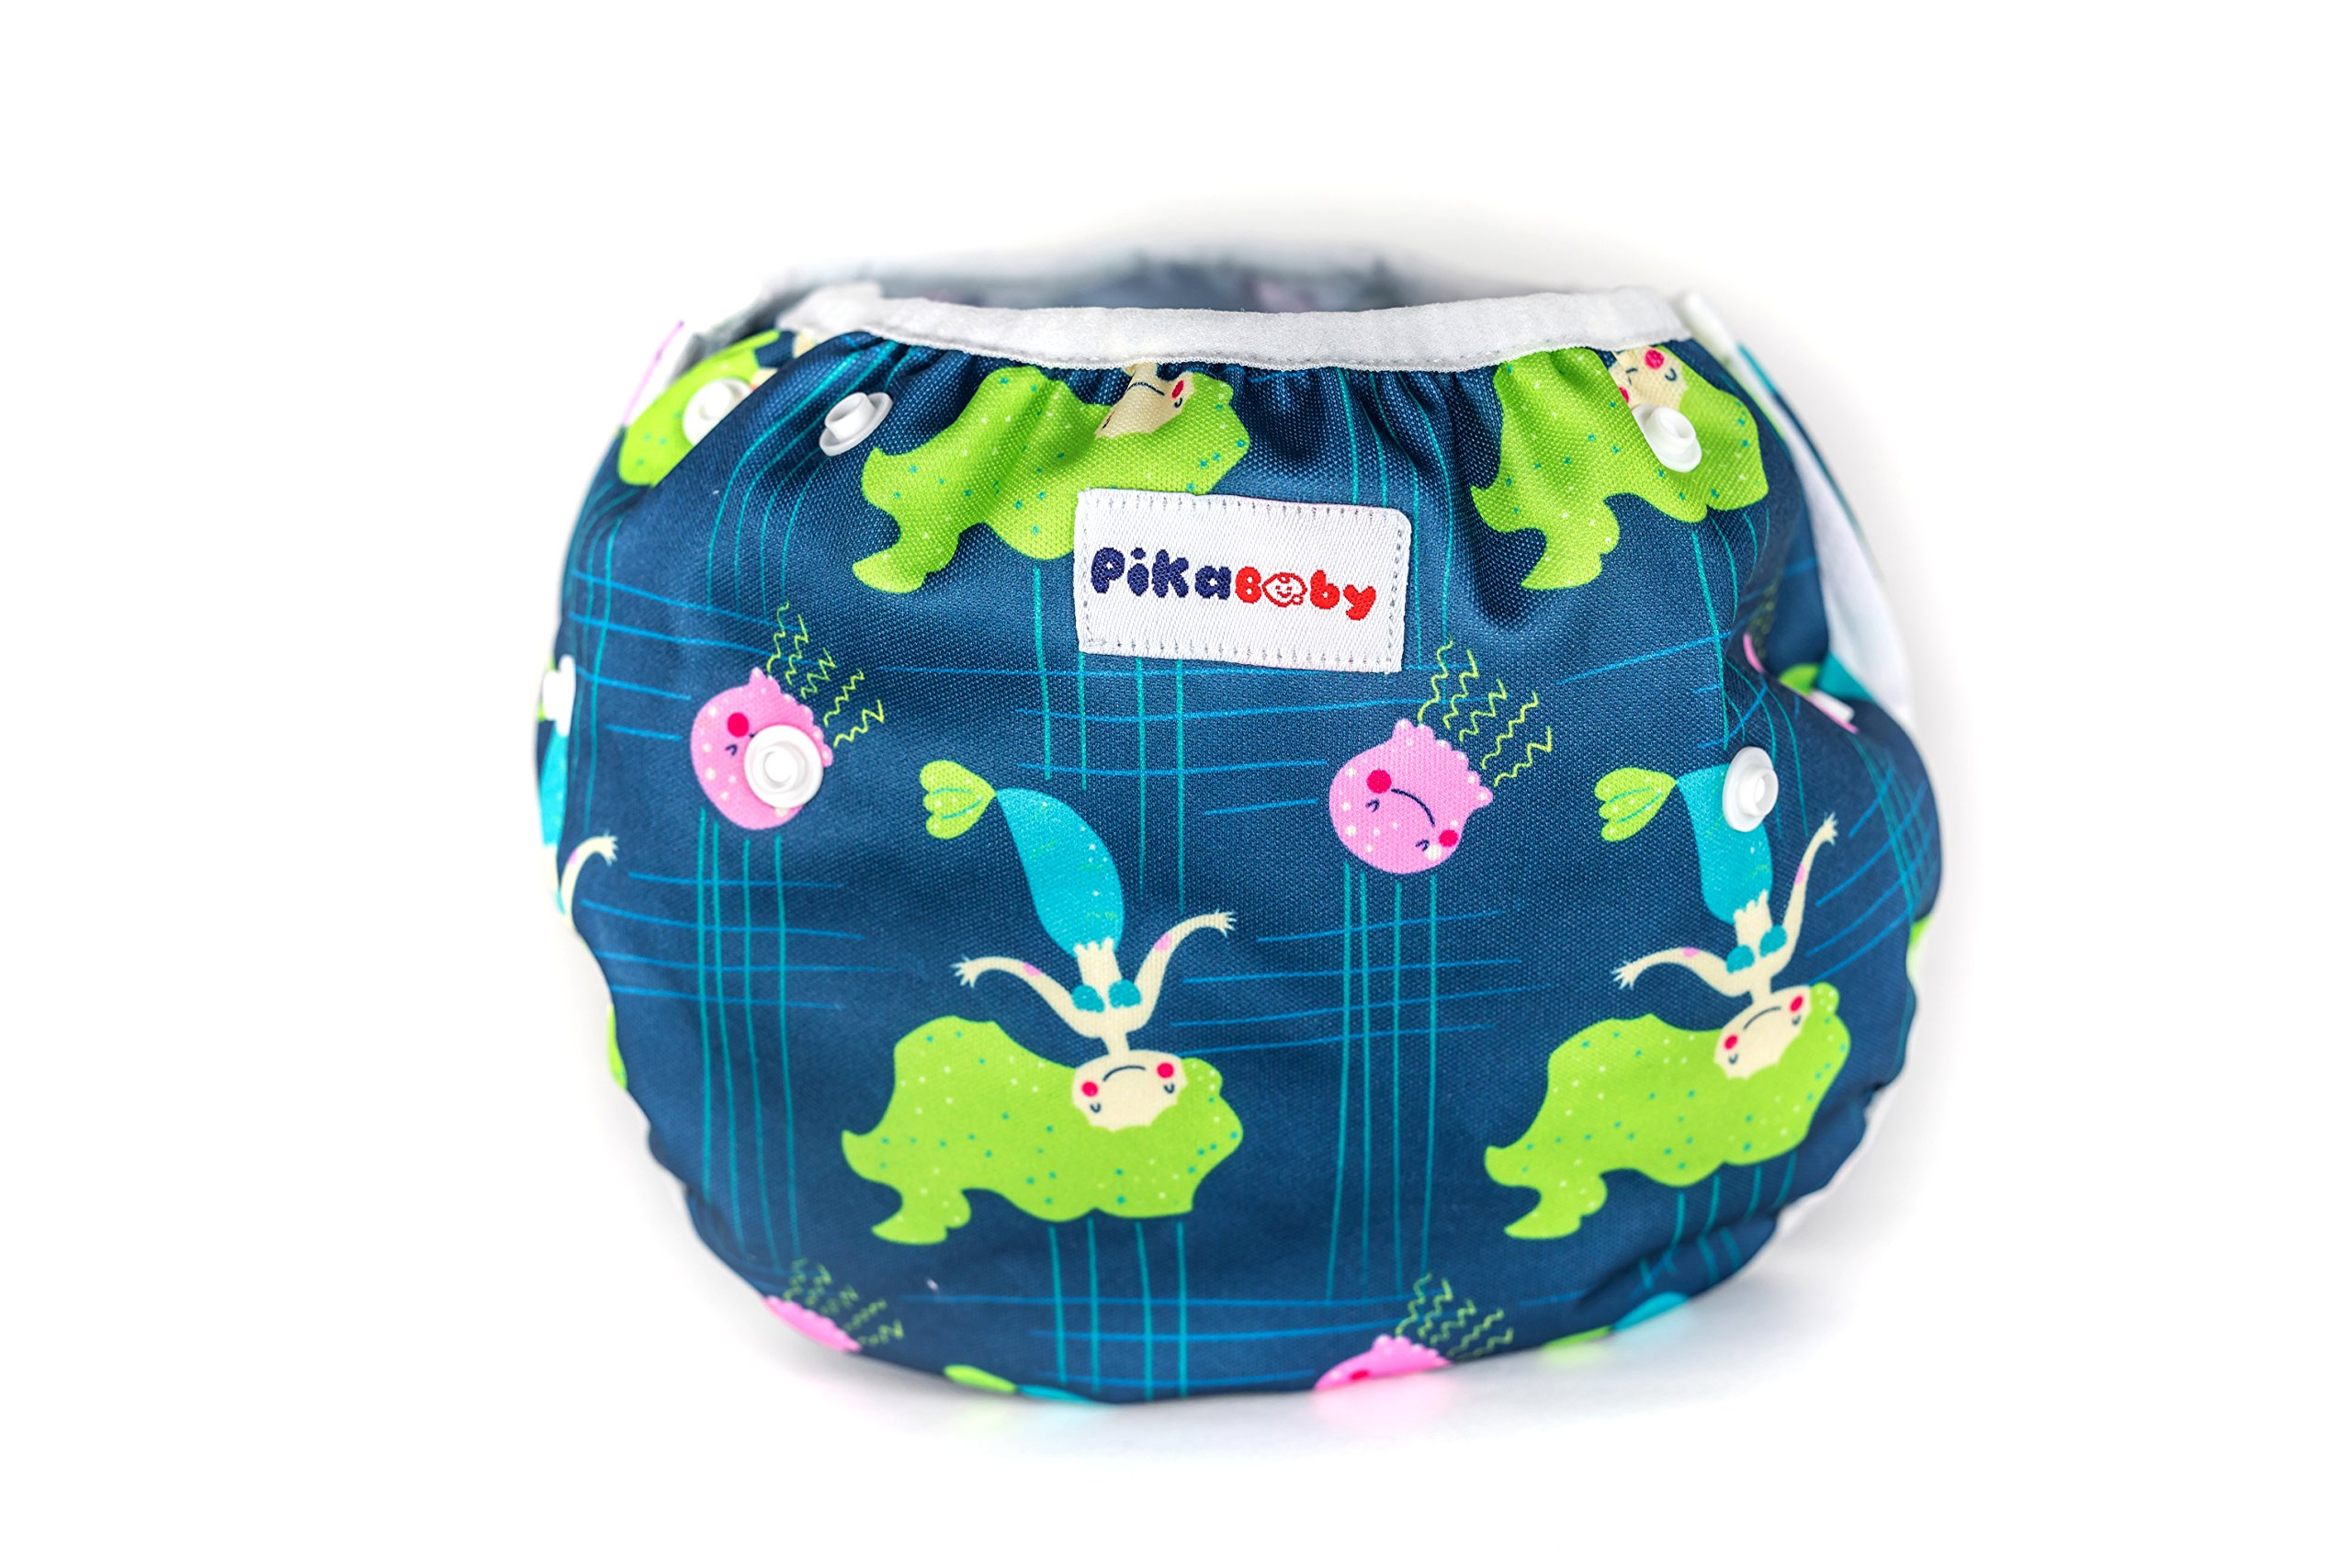 c8466448a10da Baby swim diapers - Premium, stylish, Adjustable reusable swimming suit  diapers shirt for toddler